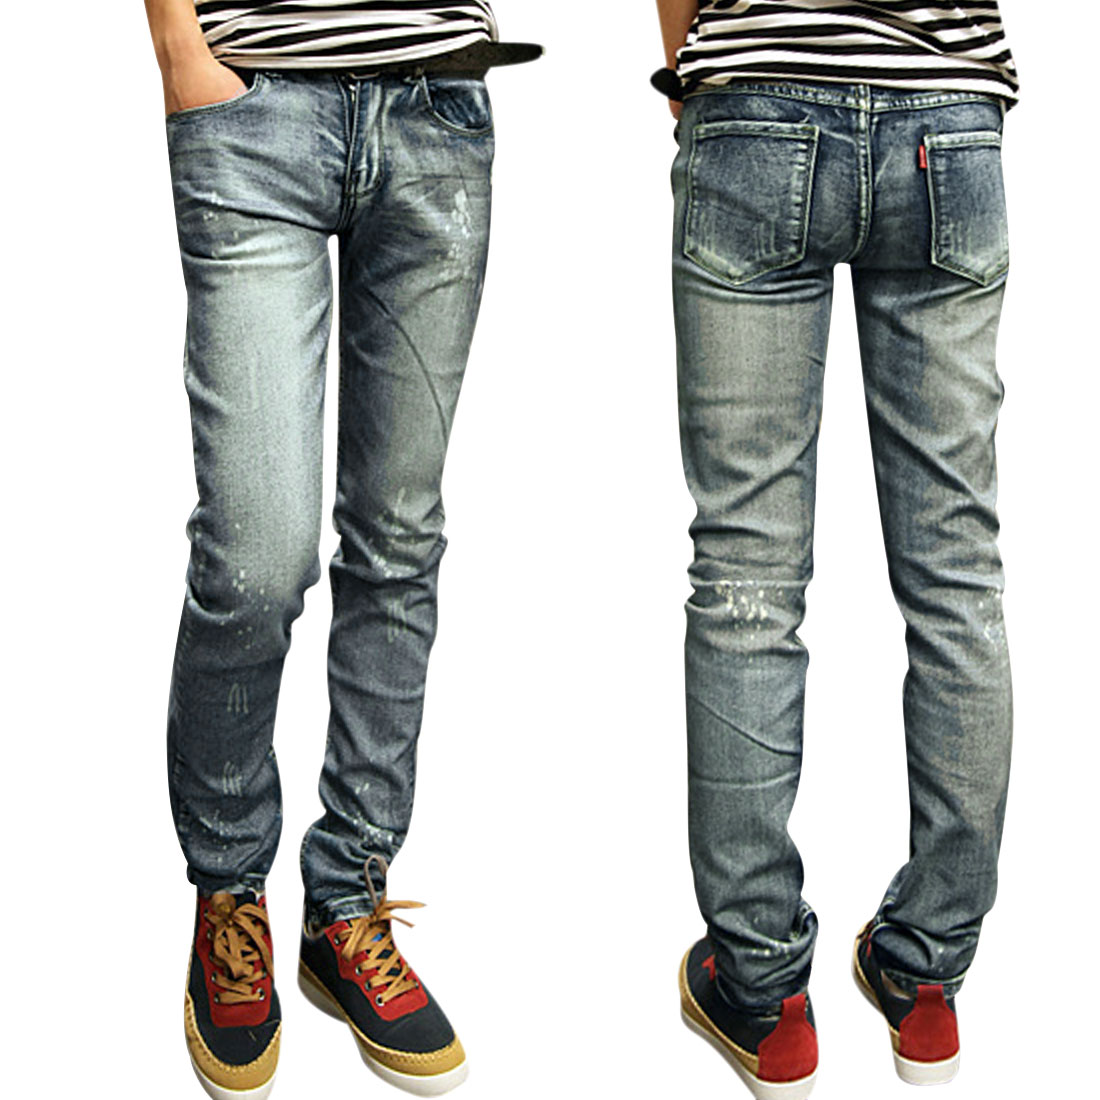 Men Zipper Fly Faded Spots Design Hip Pockets Deep Blue Jeans W31